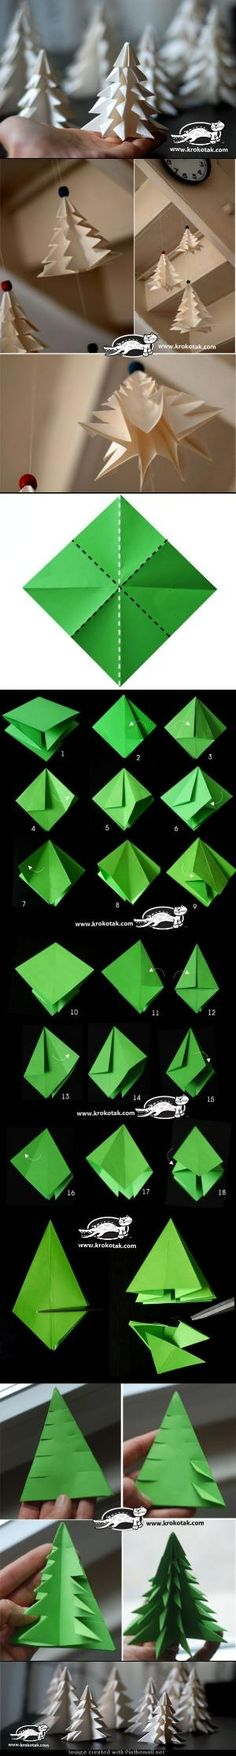 How to fold (and cut) a Christmas tree #origami #craft #paper by Merci